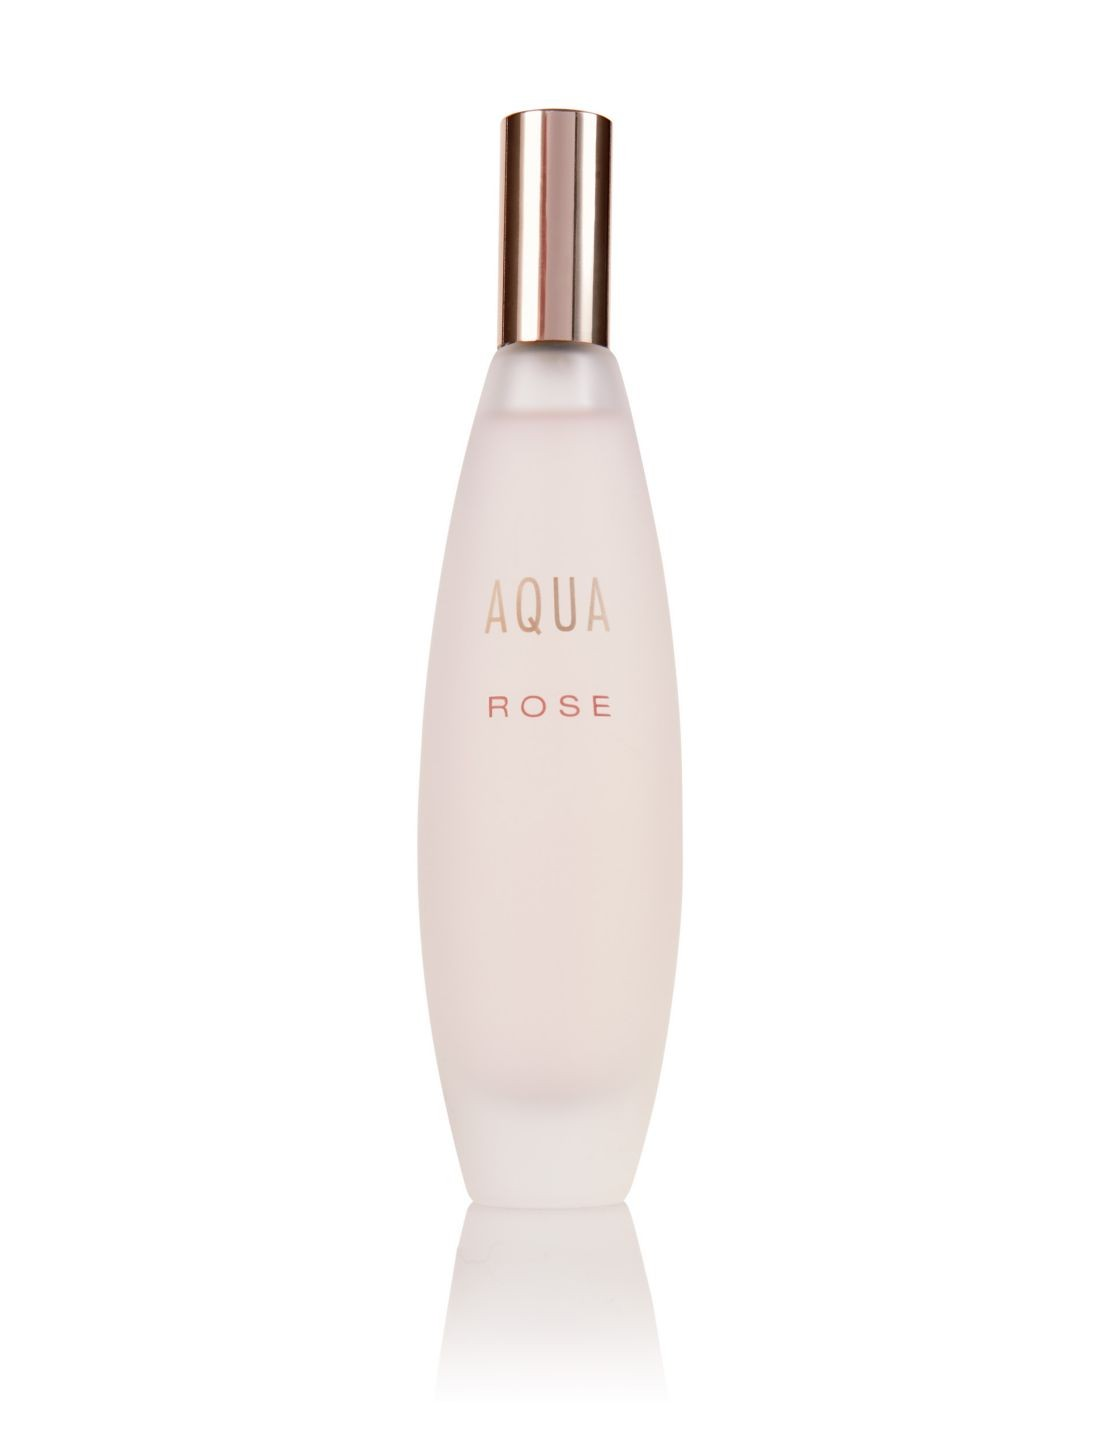 Aqua Rose Eau de Toilette 100ml